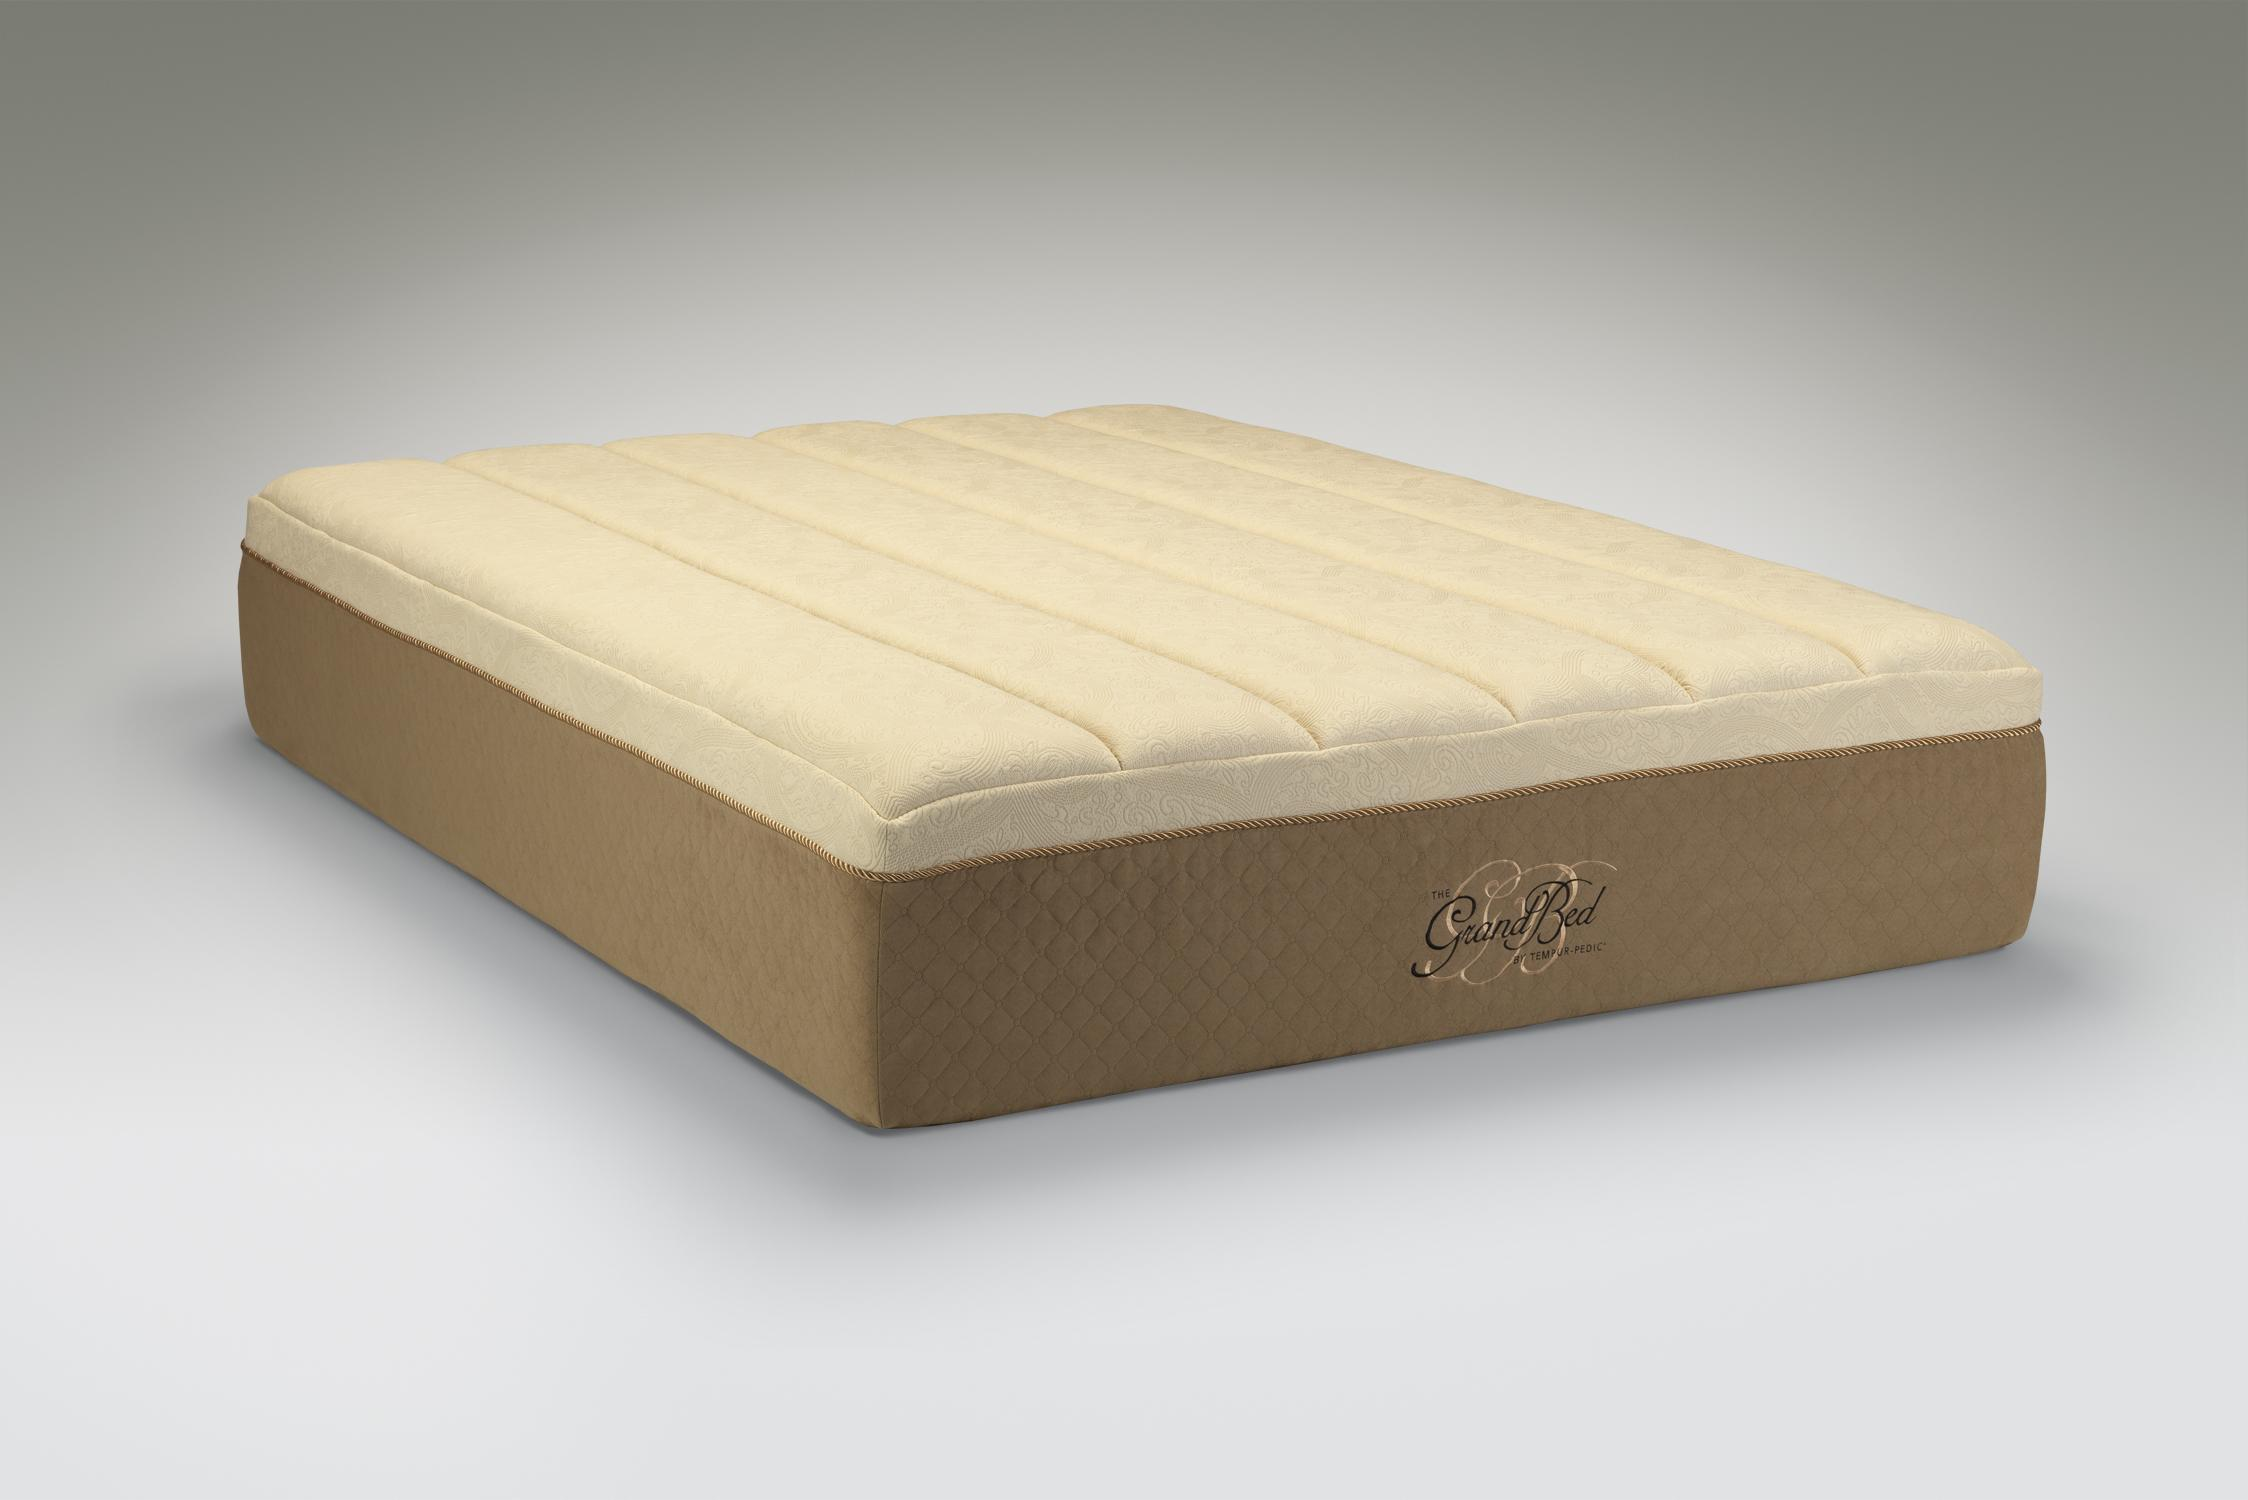 Tempur-Pedic® The GrandBed Queen Medium-Soft Mattress - Item Number: 10185250